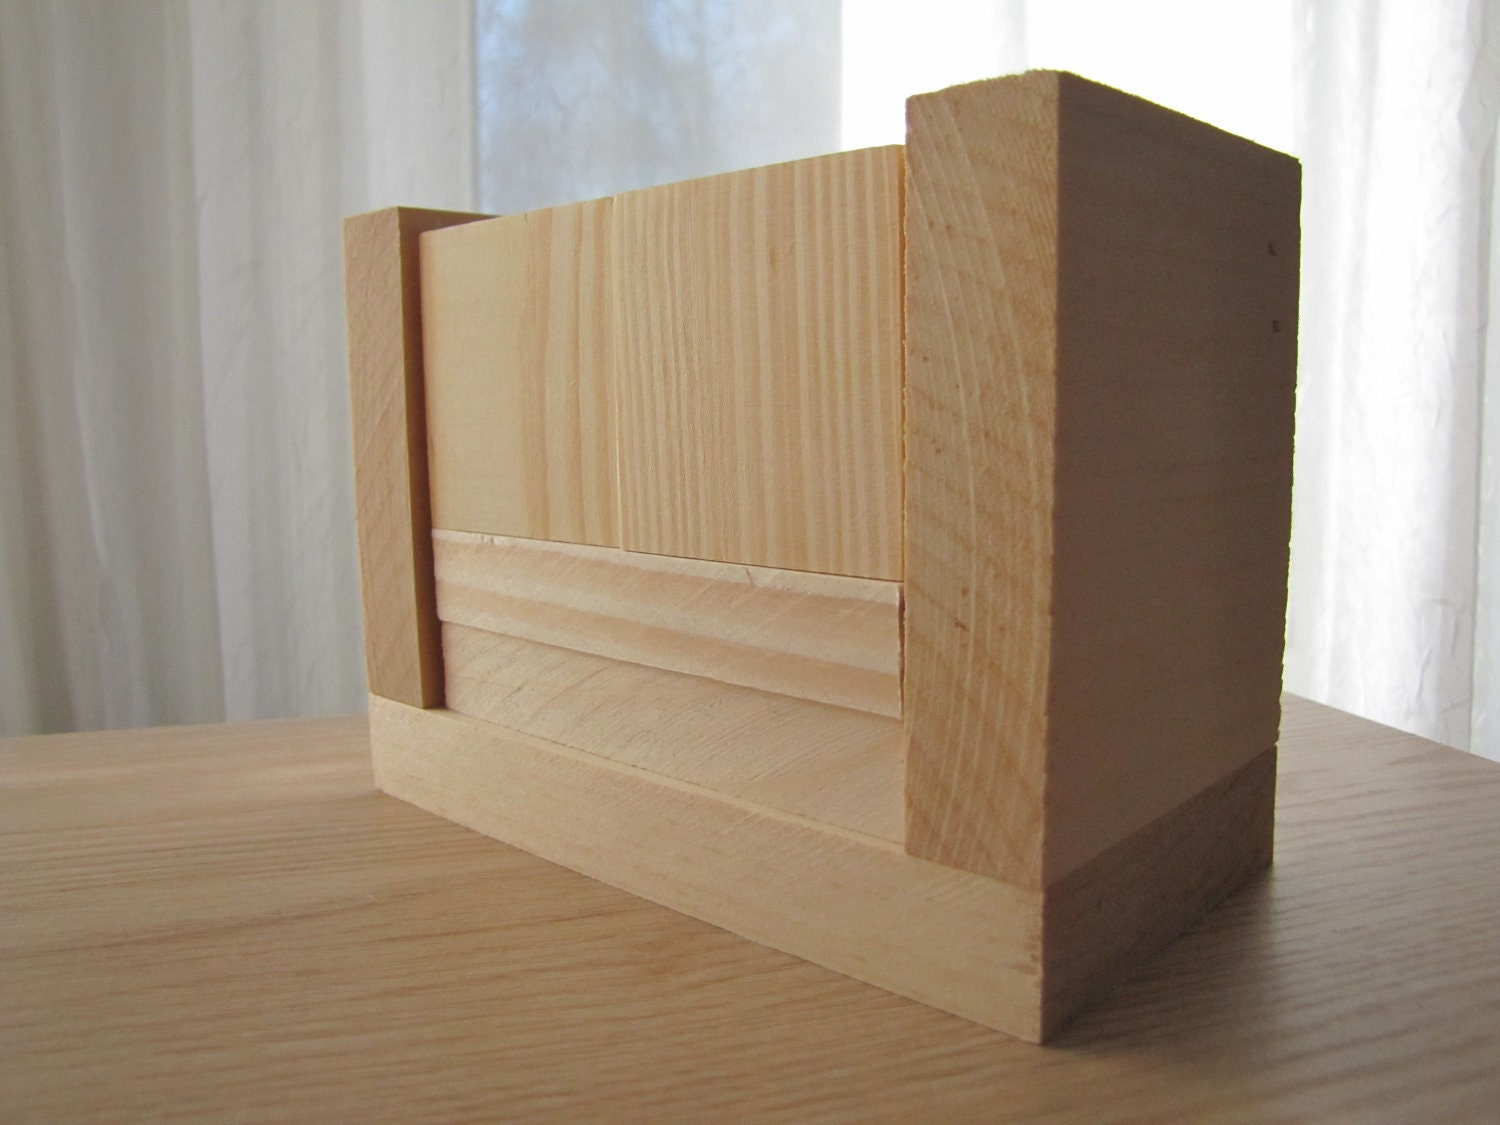 Blank Calendar Blocks : Blank perpetual wooden block calendar month and day nekkid